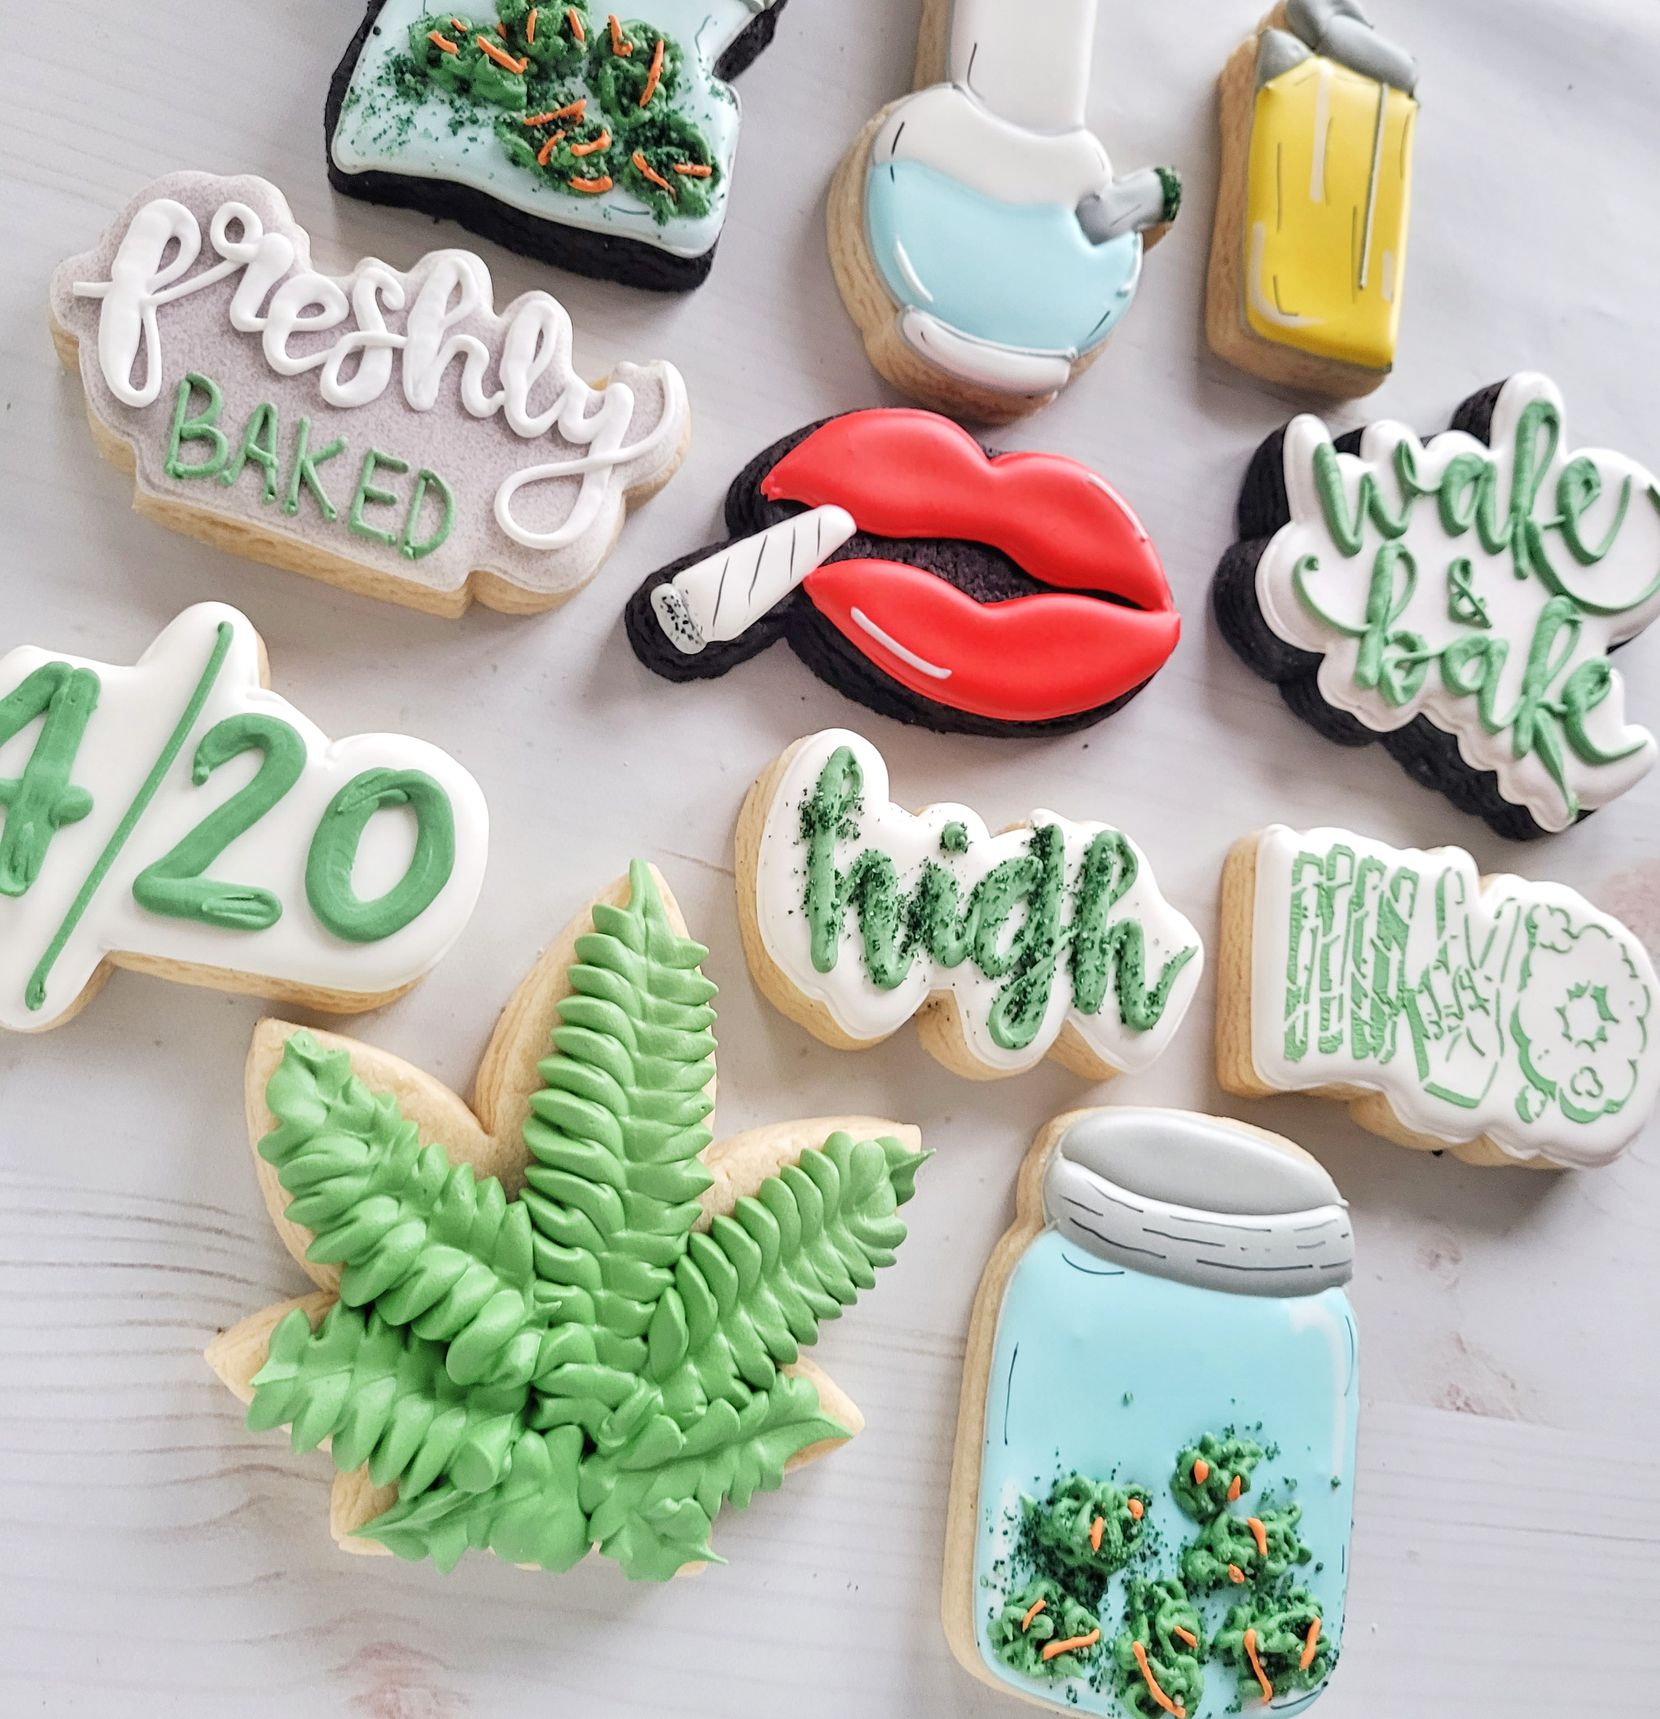 """Chrysta Miller bakes all kinds of cookies for all occasions, but she's best known for her """"inappropriate cookies"""" online, which include phallic-shaped biscuits. (Courtesy Chrysta Miller)"""